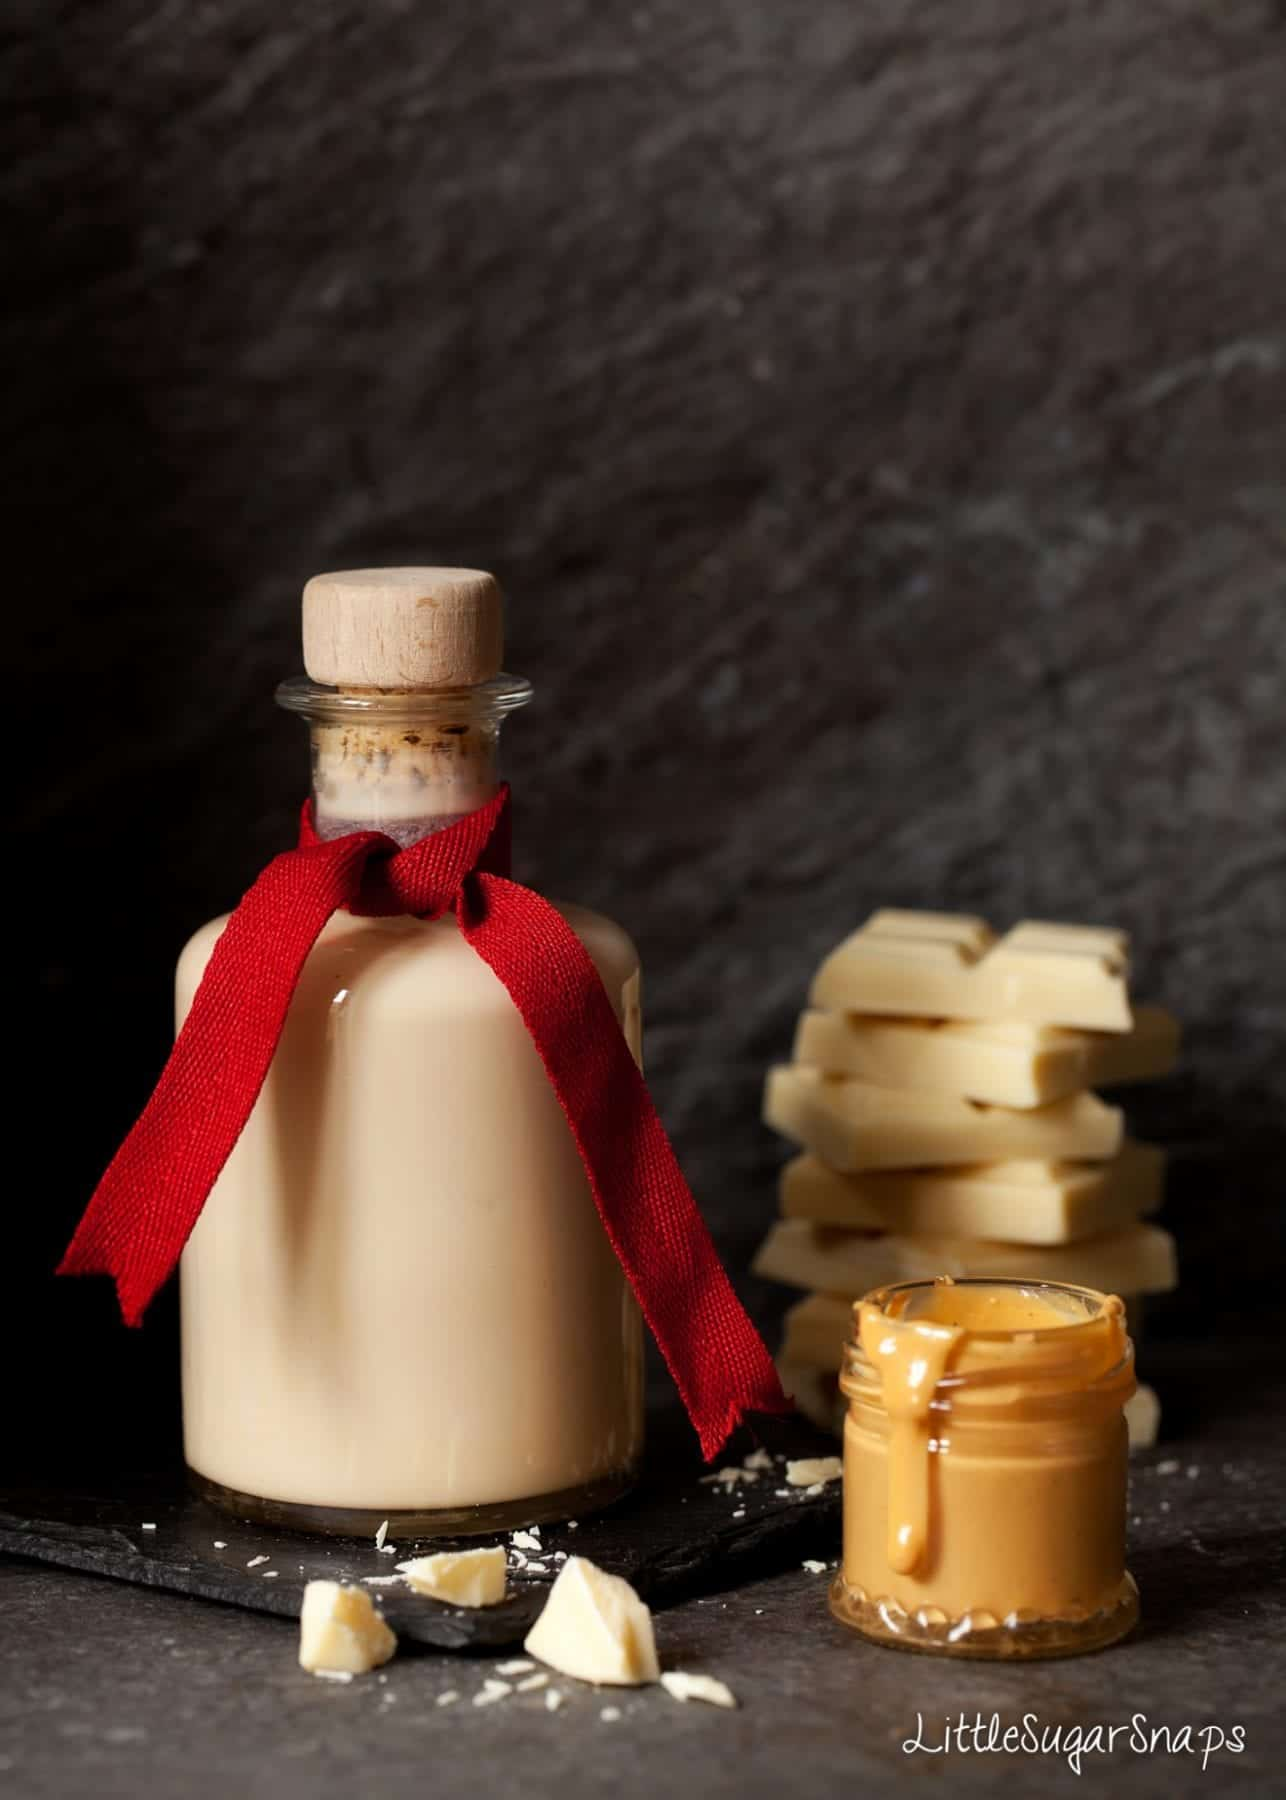 a bottle of homemade cream liqueur with ingredients at the side